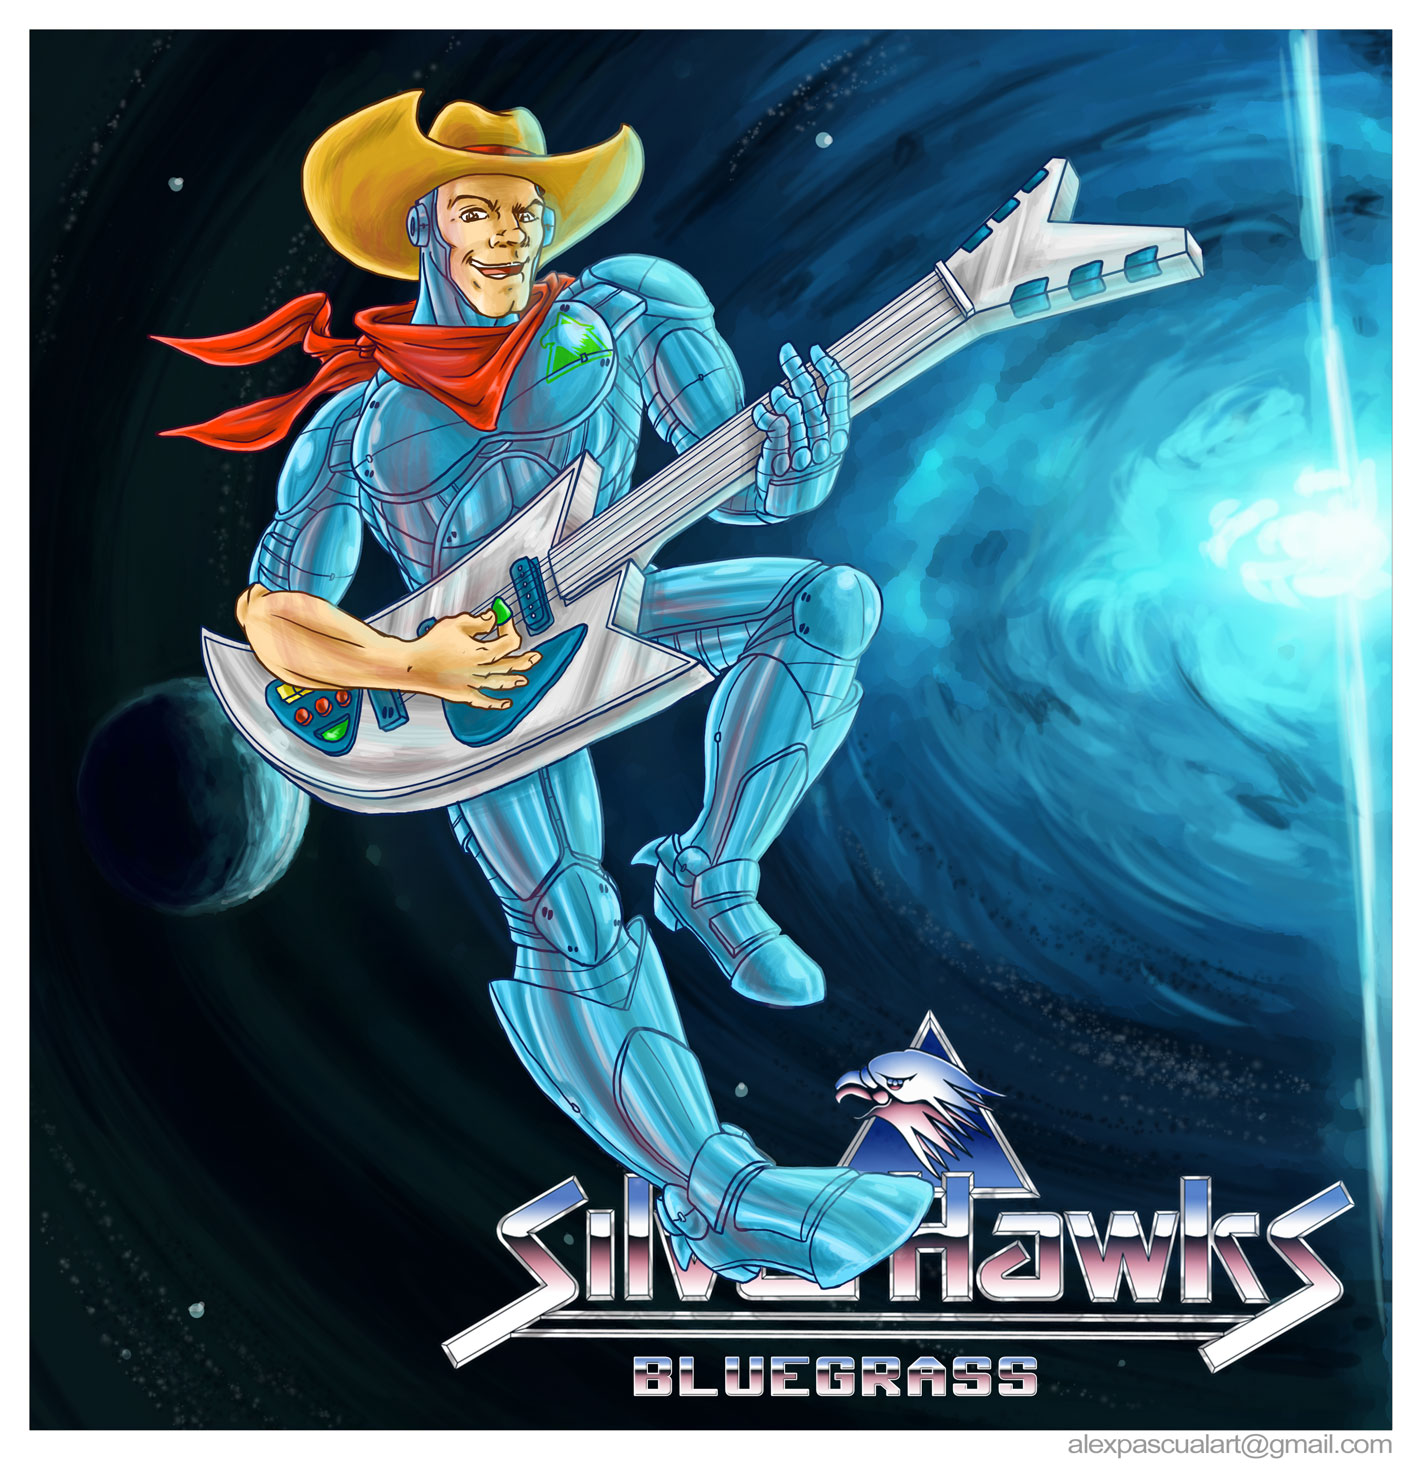 silverhawks cartoon my site daottk